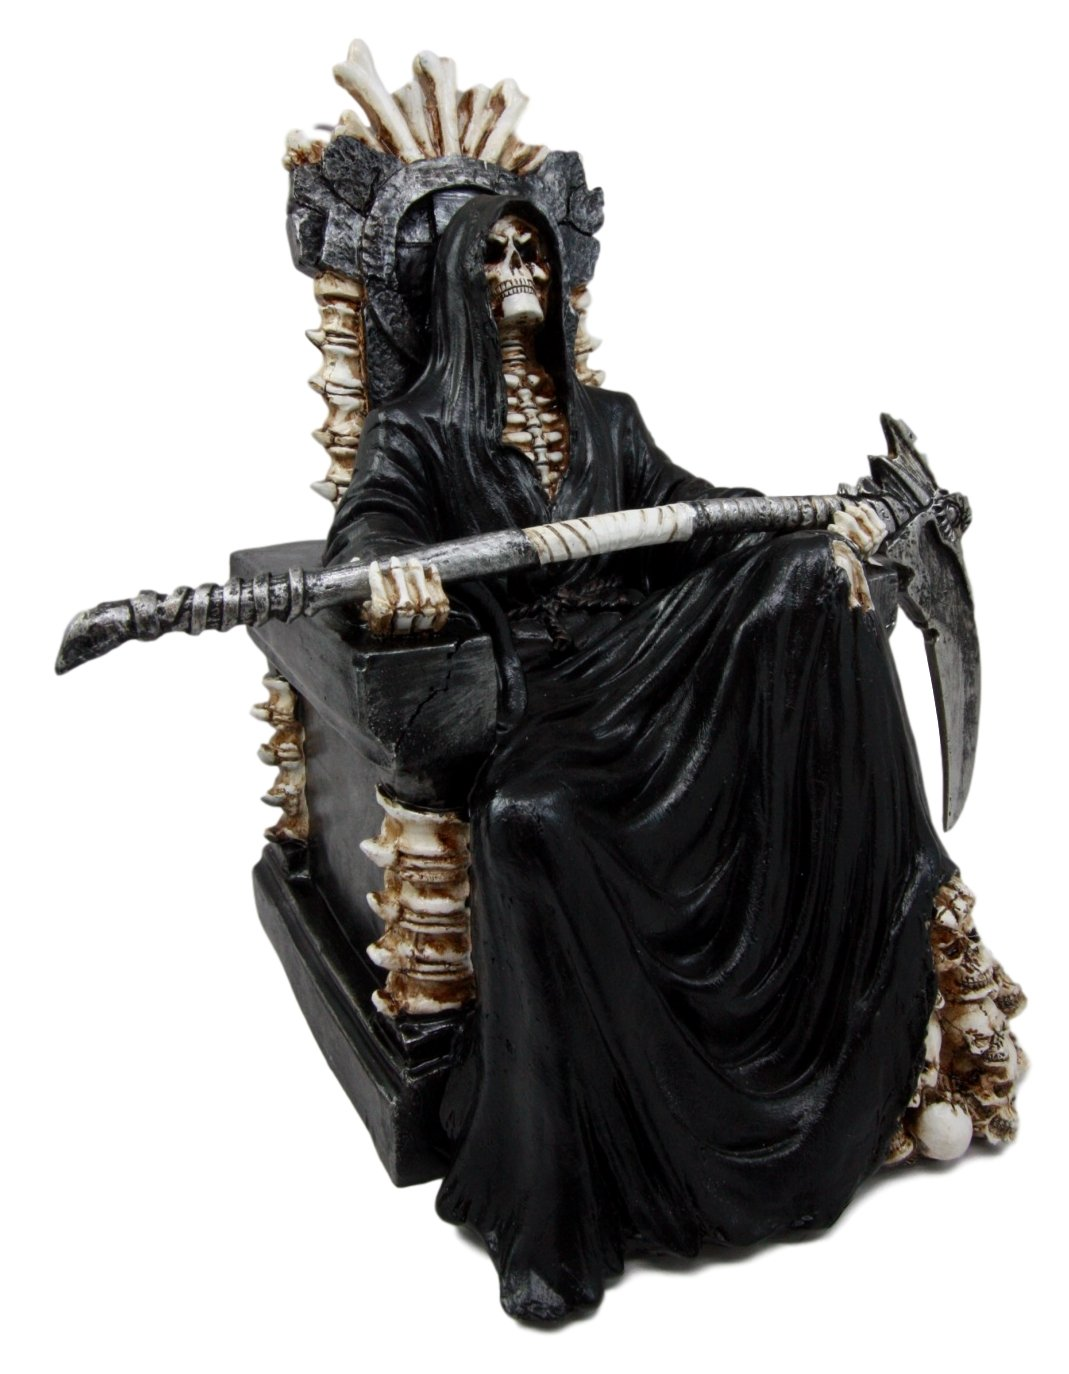 Ebros Gift Black Holy Death Grim Reaper Sitting On Skeleton Throne Figurine 10.5 Tall Time Waits for No Man Angel of Death with Scythe As Ossuary Home Decor Eternal Death Gates of Hades